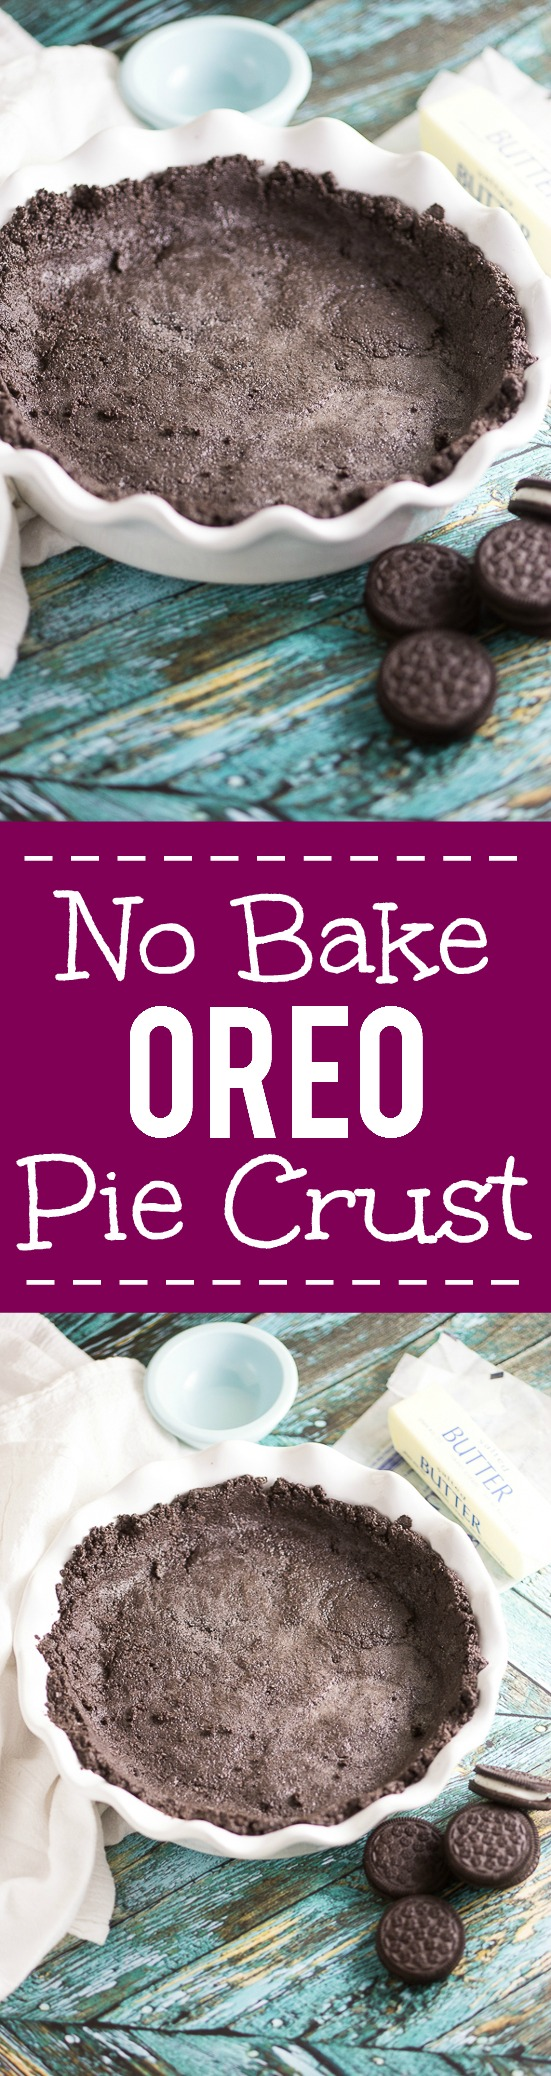 No Bake Oreo Cookie Pie Crust -This chocolate, easy Oreo crust recipe is simple and delicious, with just 2 ingredients. Perfect way to make your favorite no bake pie or cheesecake even more fabulous! Such an easy pie crust recipe and so yummy!